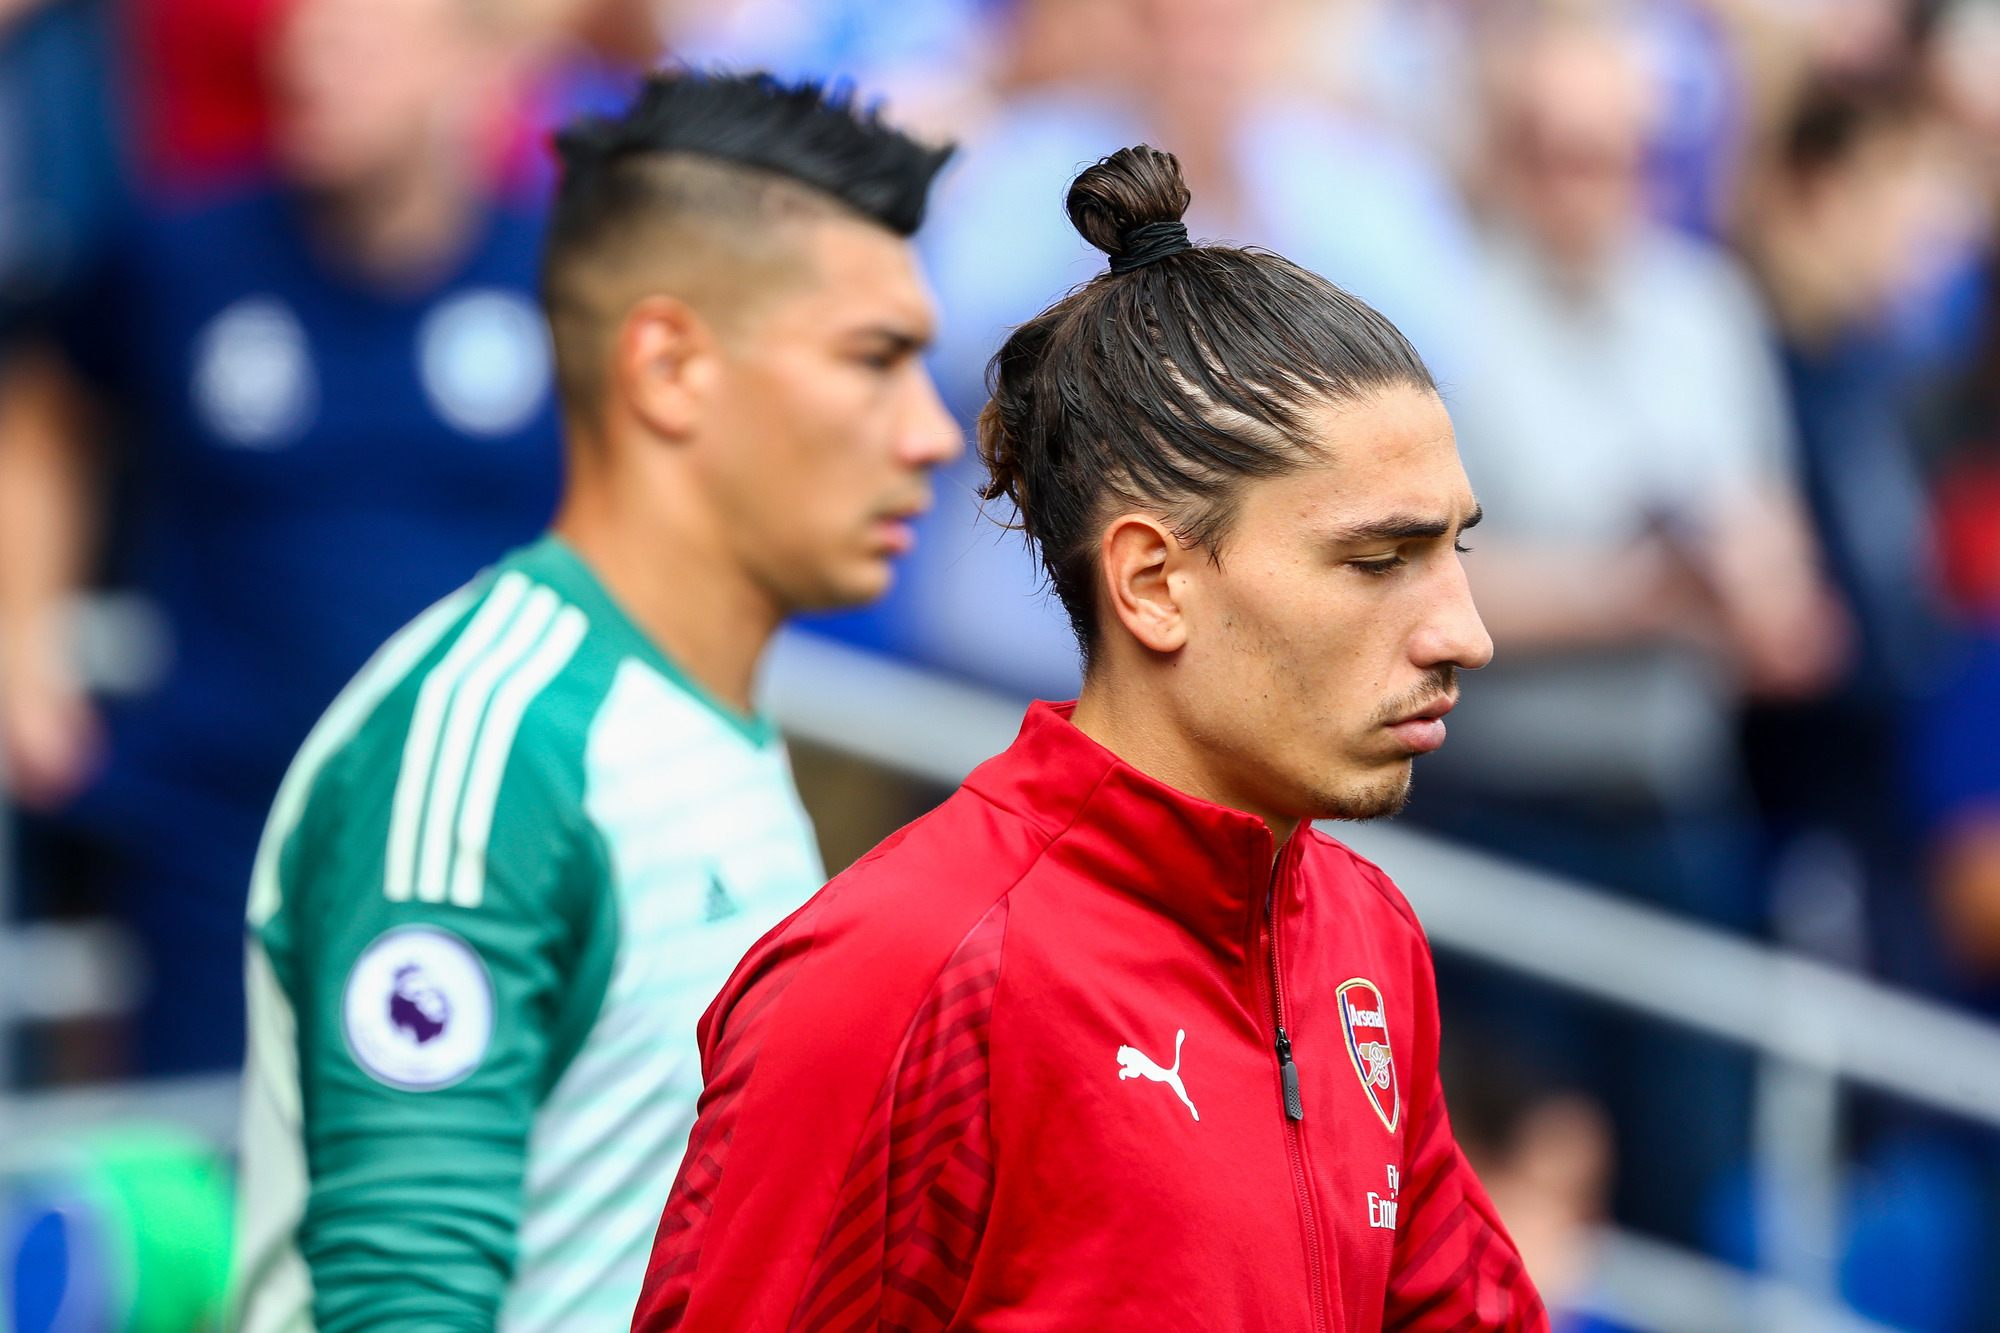 Football hairstyles: Hector Bellerin with brown straight hair in looped man bun wearing red Liverpool football training kit.